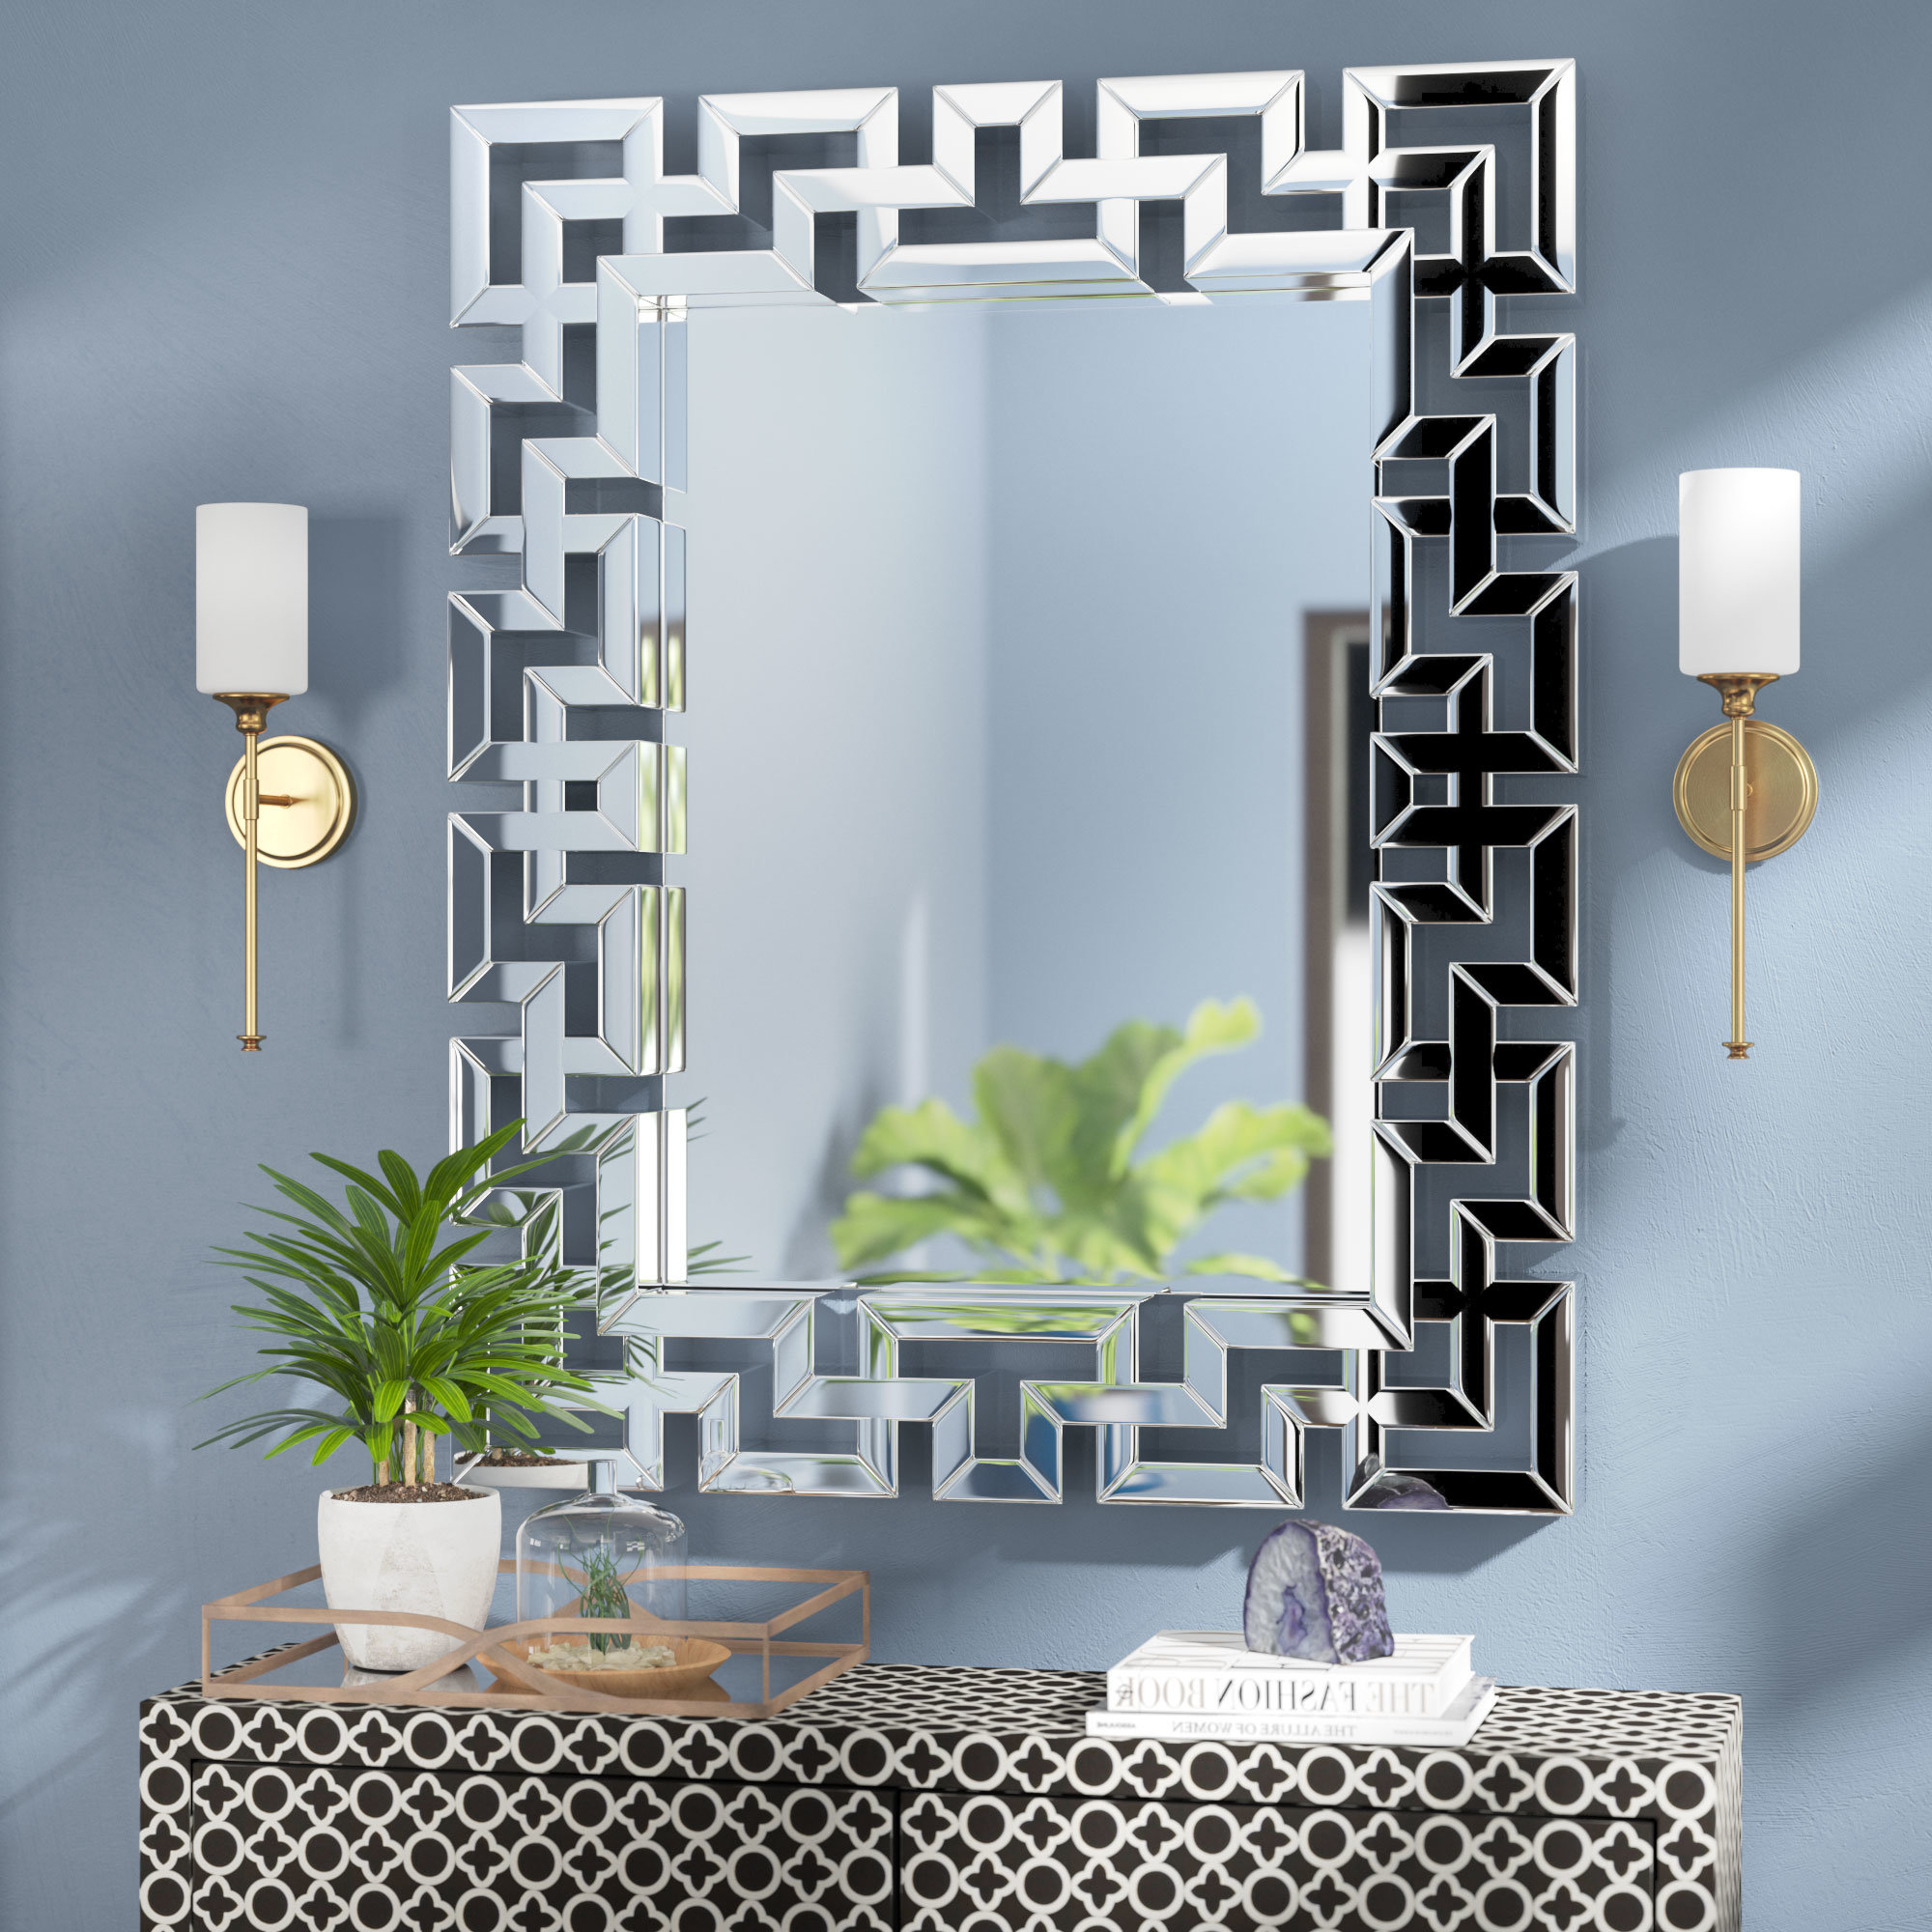 Oblong Wall Mirrors Throughout Favorite Rectangle Ornate Geometric Wall Mirror (View 3 of 20)